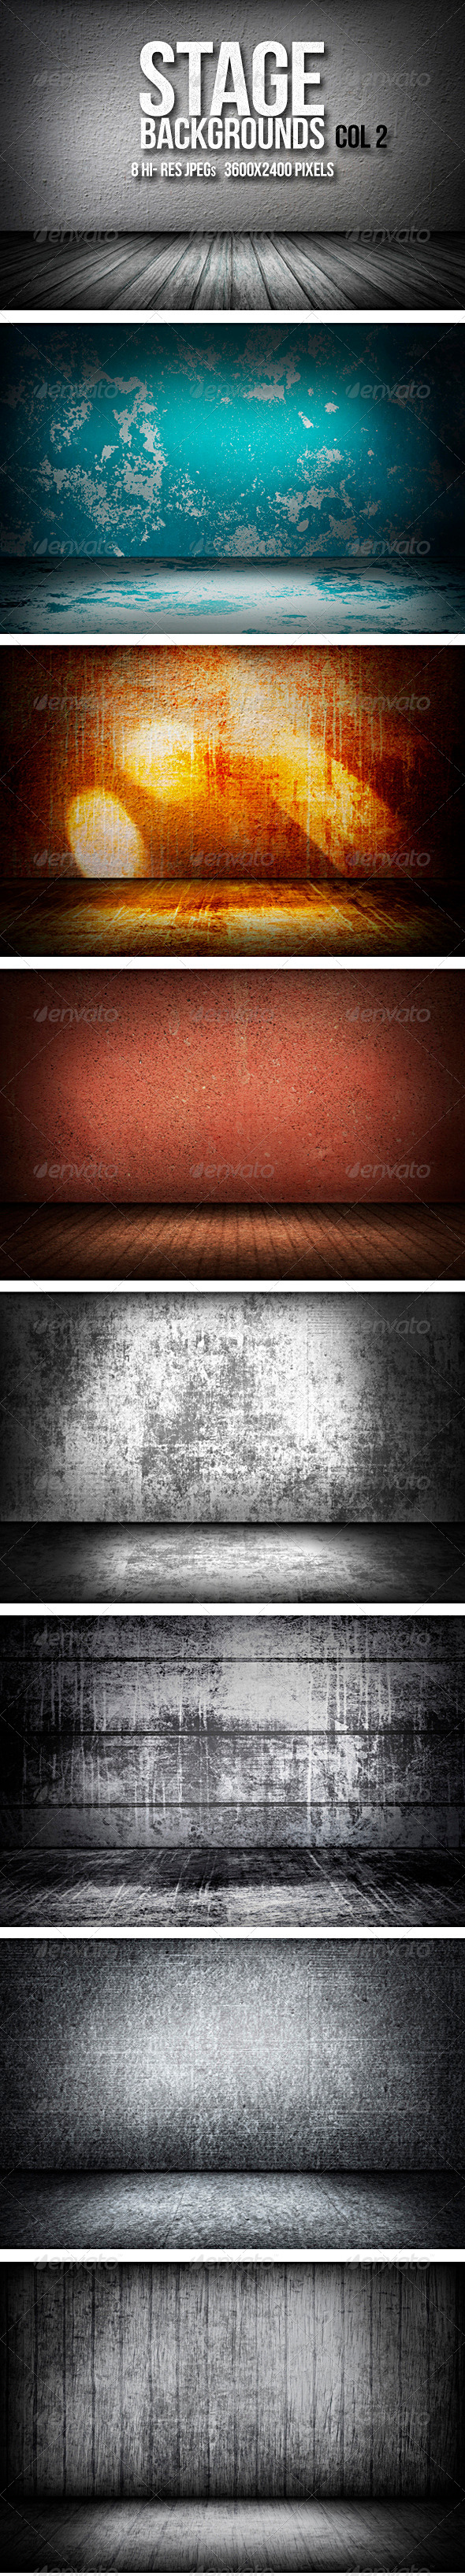 Stage Backgrounds Col 2 - 3D Backgrounds